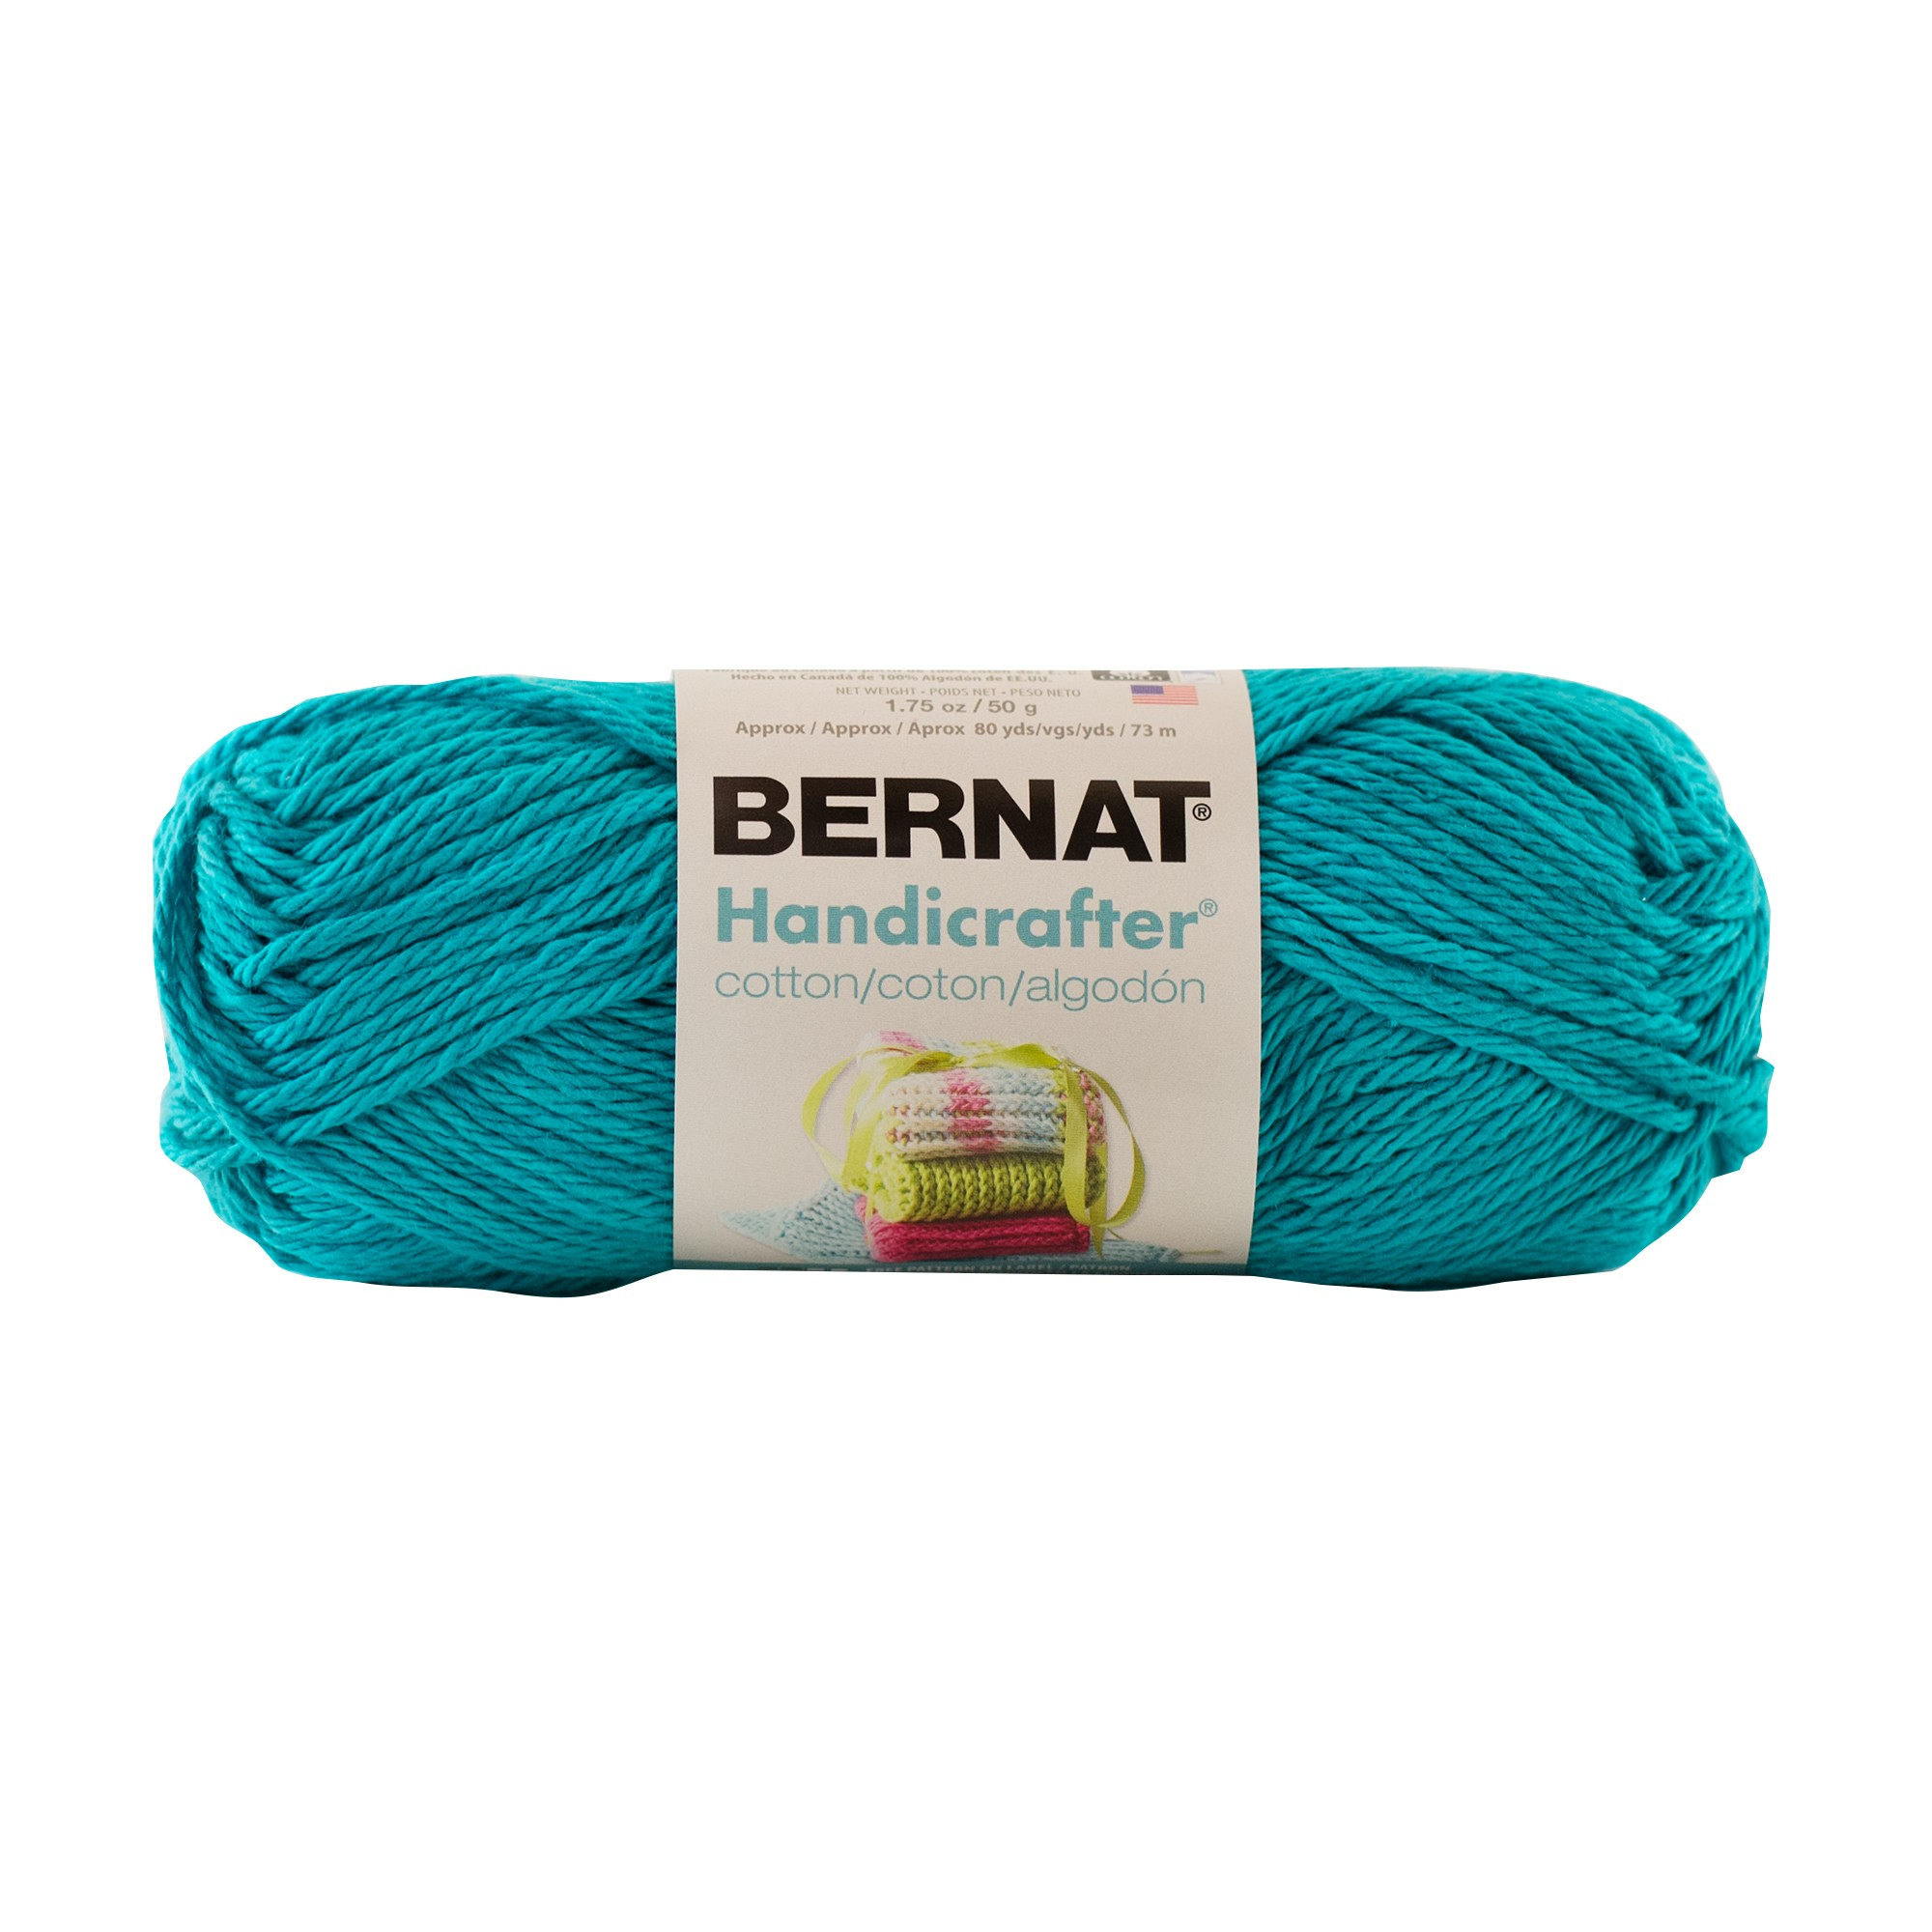 Handicrafter Cotton Yarn 42.5g / 50g